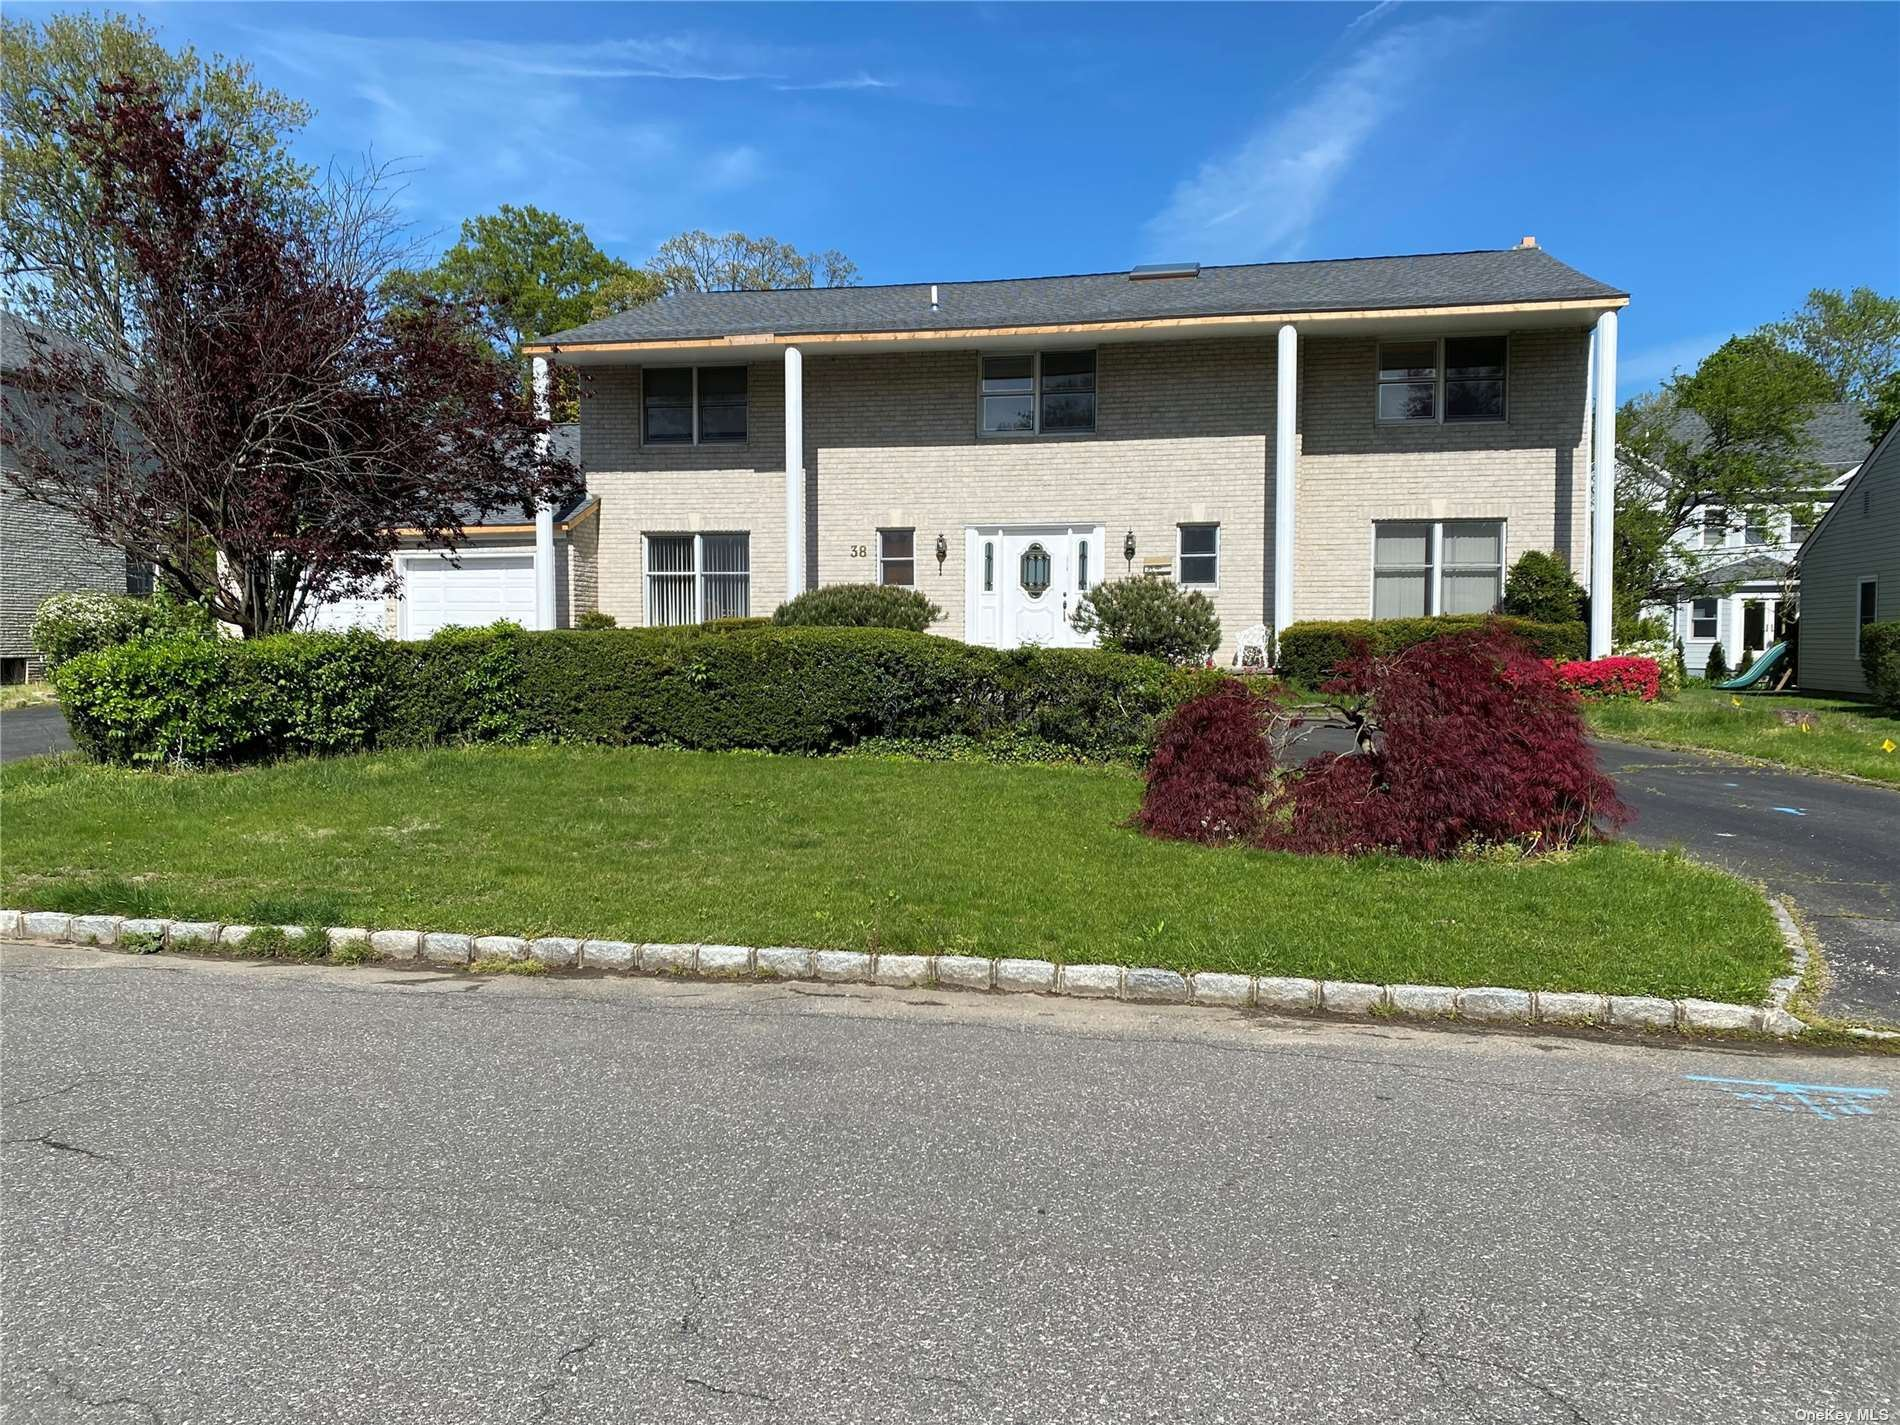 38 Bridle Path, Great Neck, NY 11021 - MLS#: 3319646